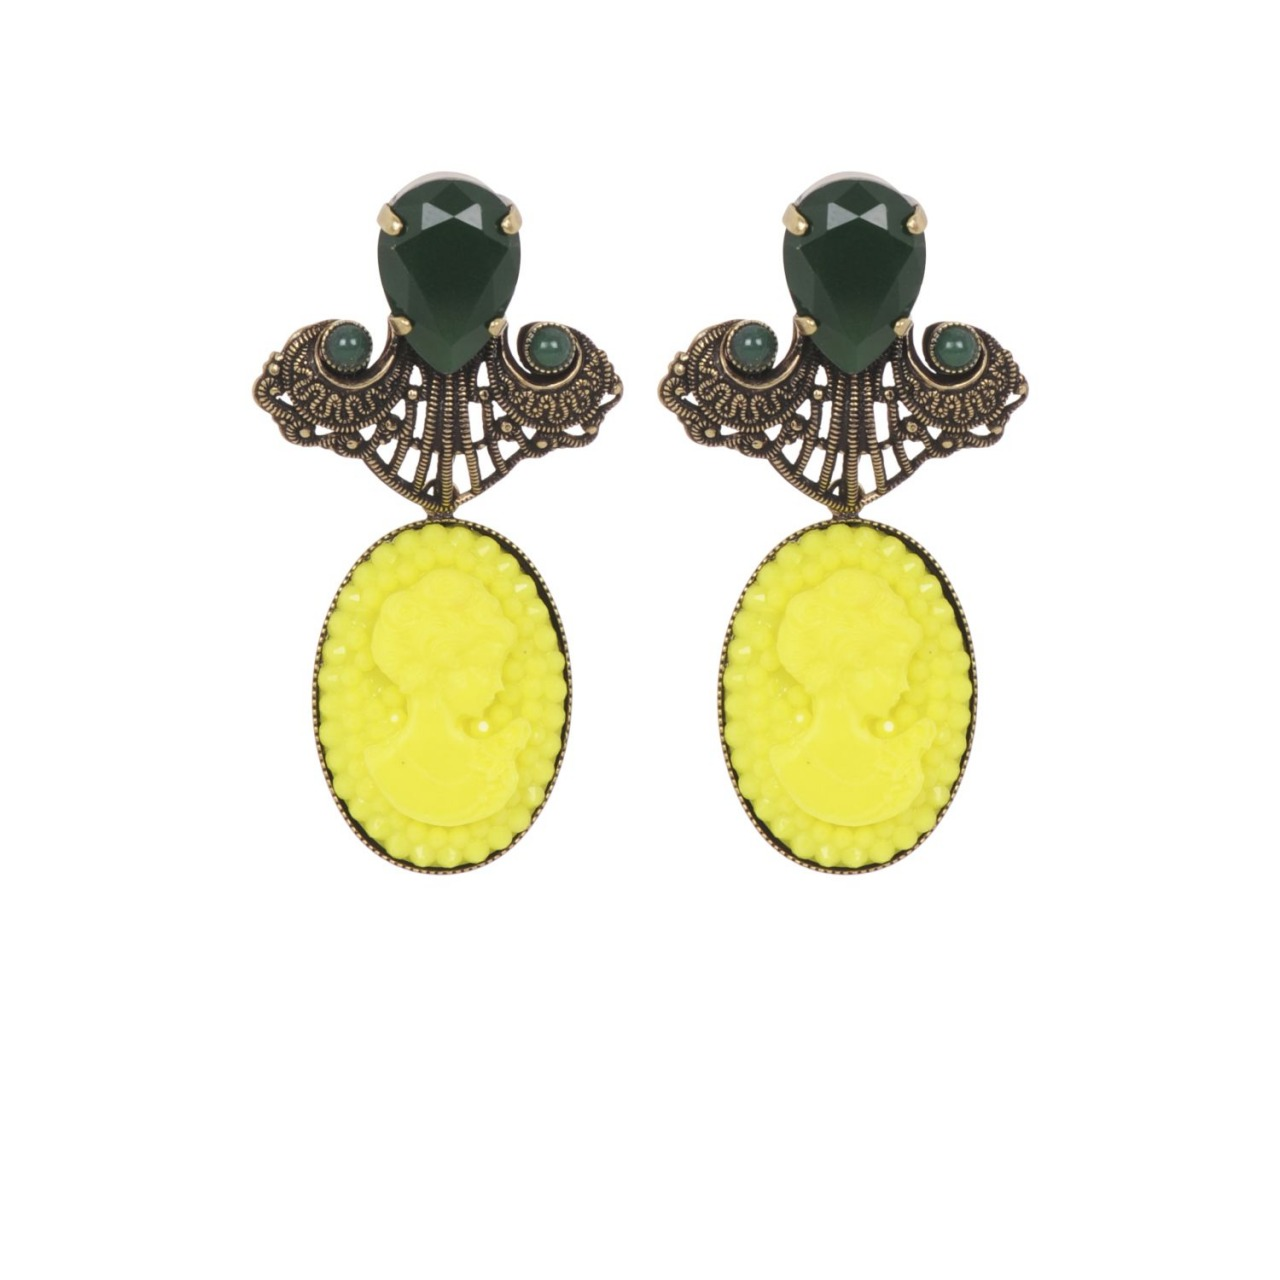 Beetel Camée Earrings